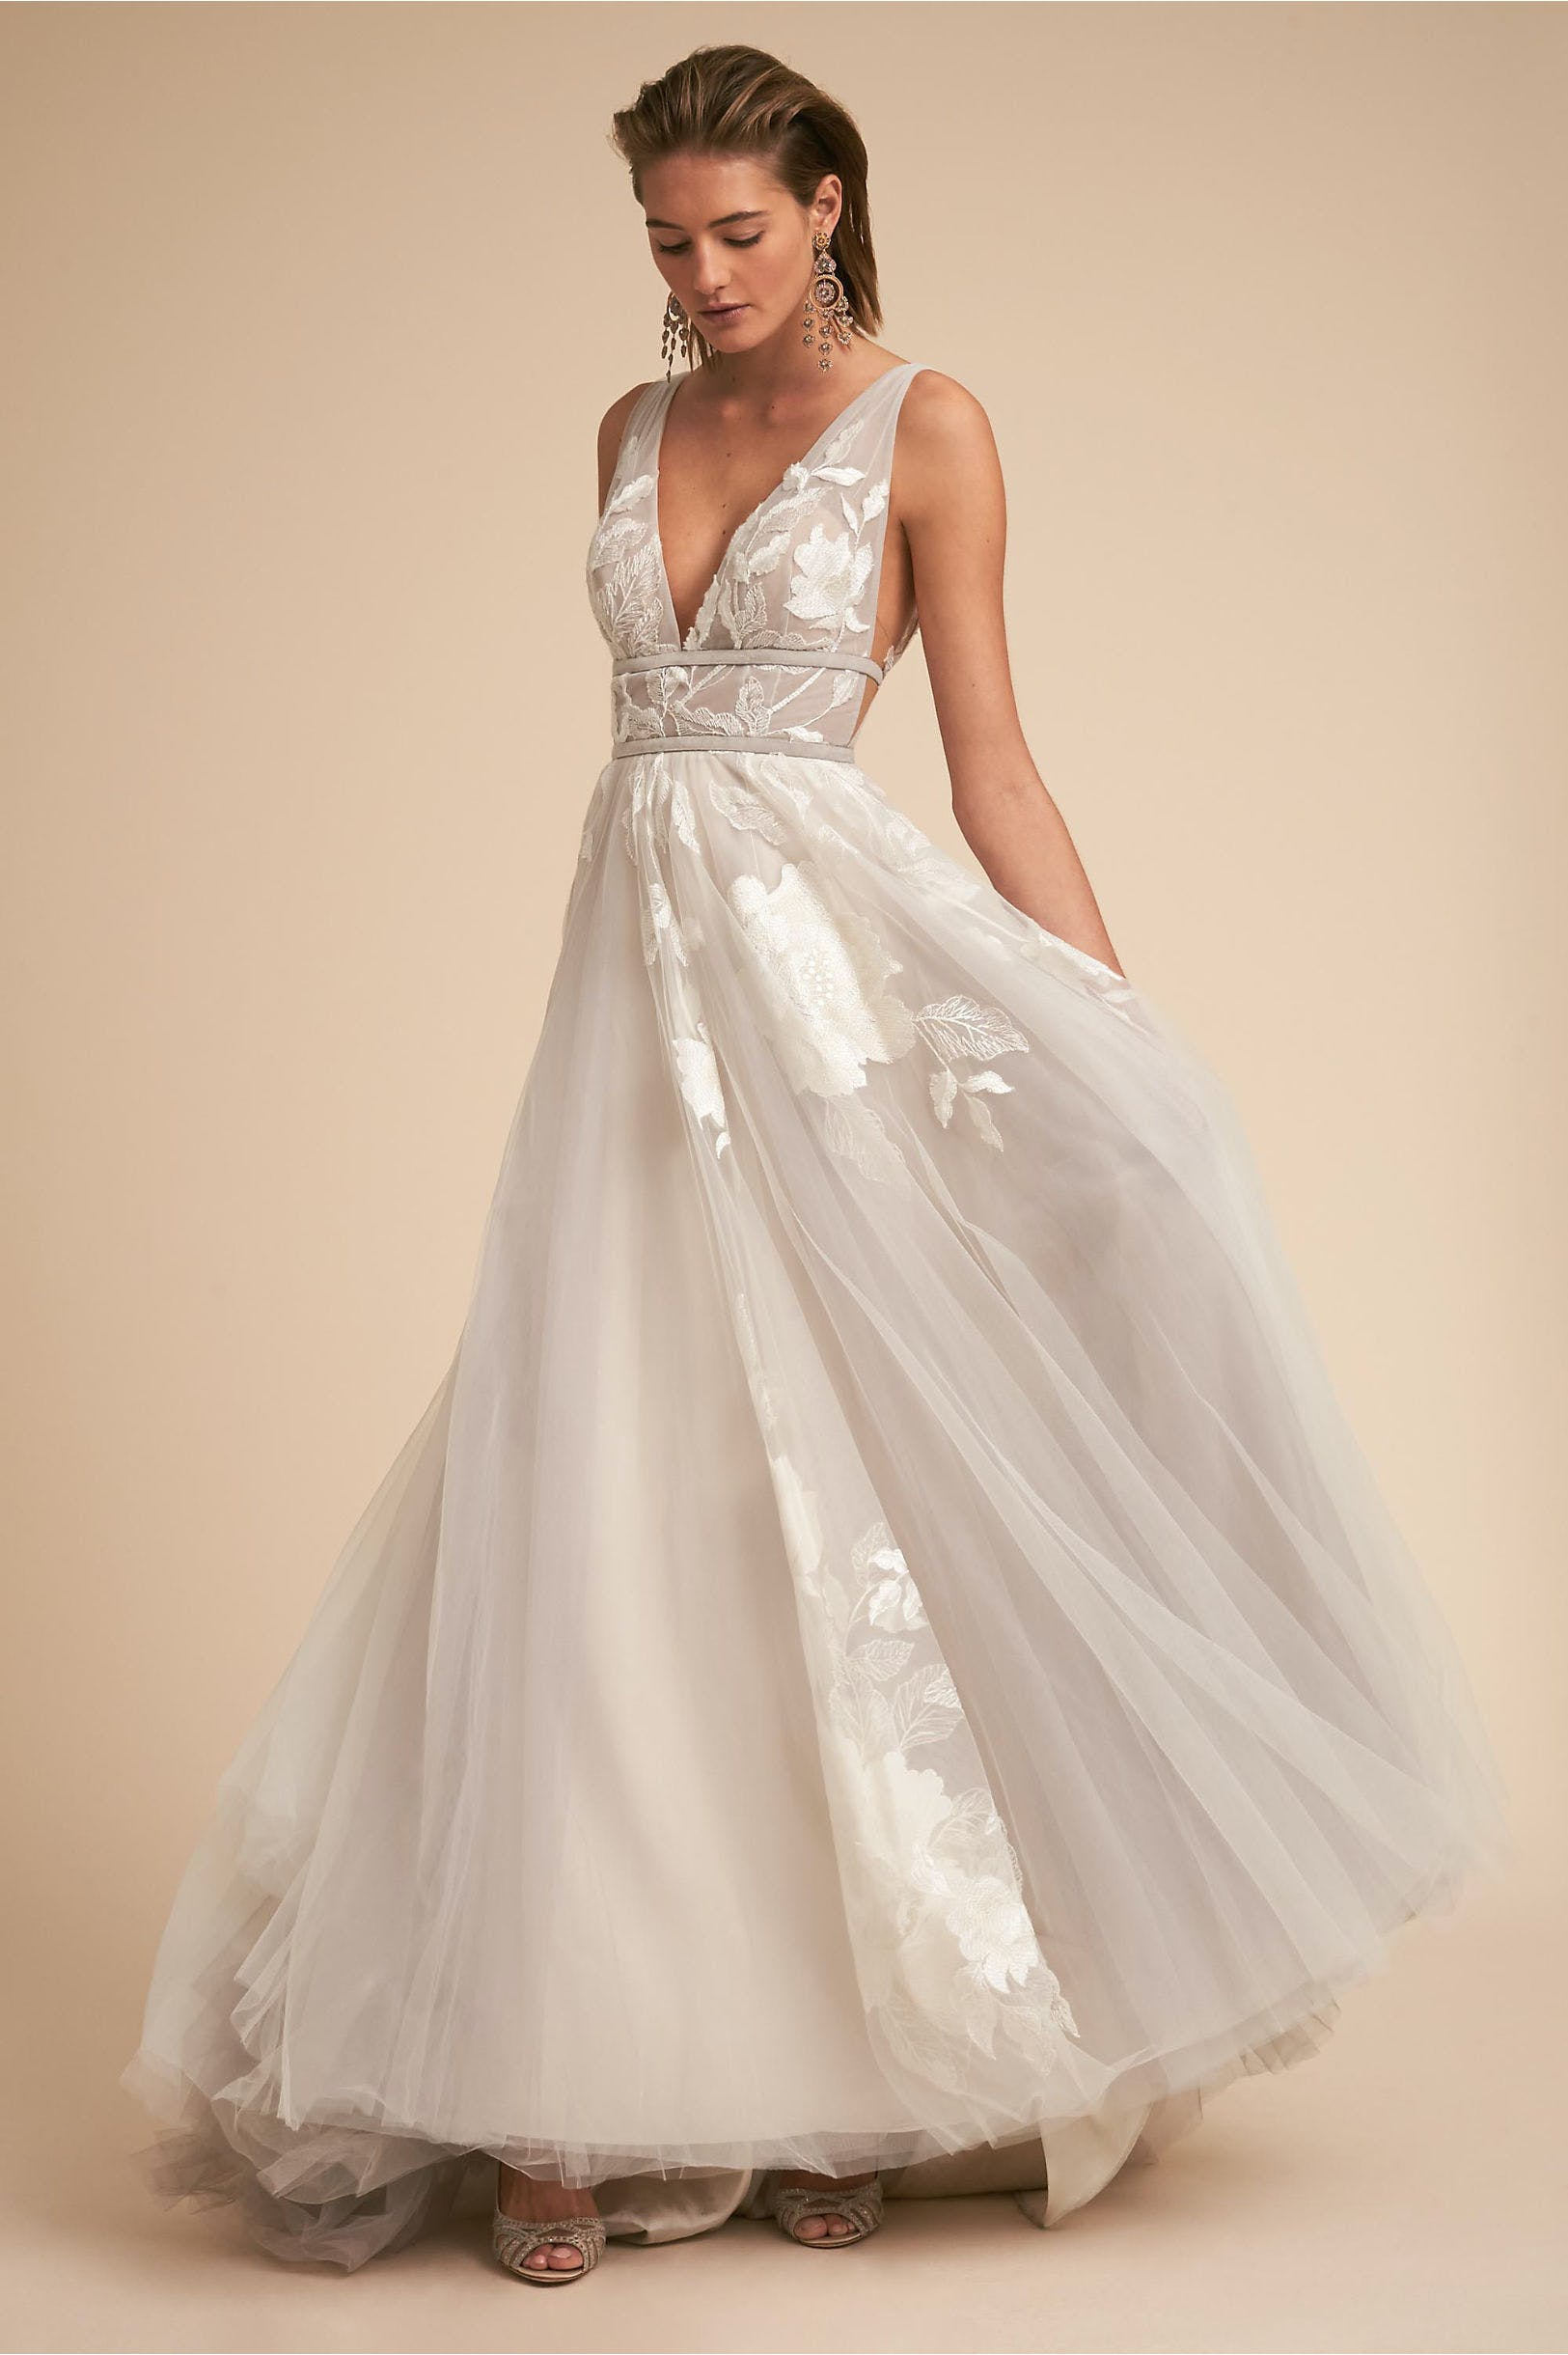 New BHLDN Bridal and Bridesmaid Collections - PureWow